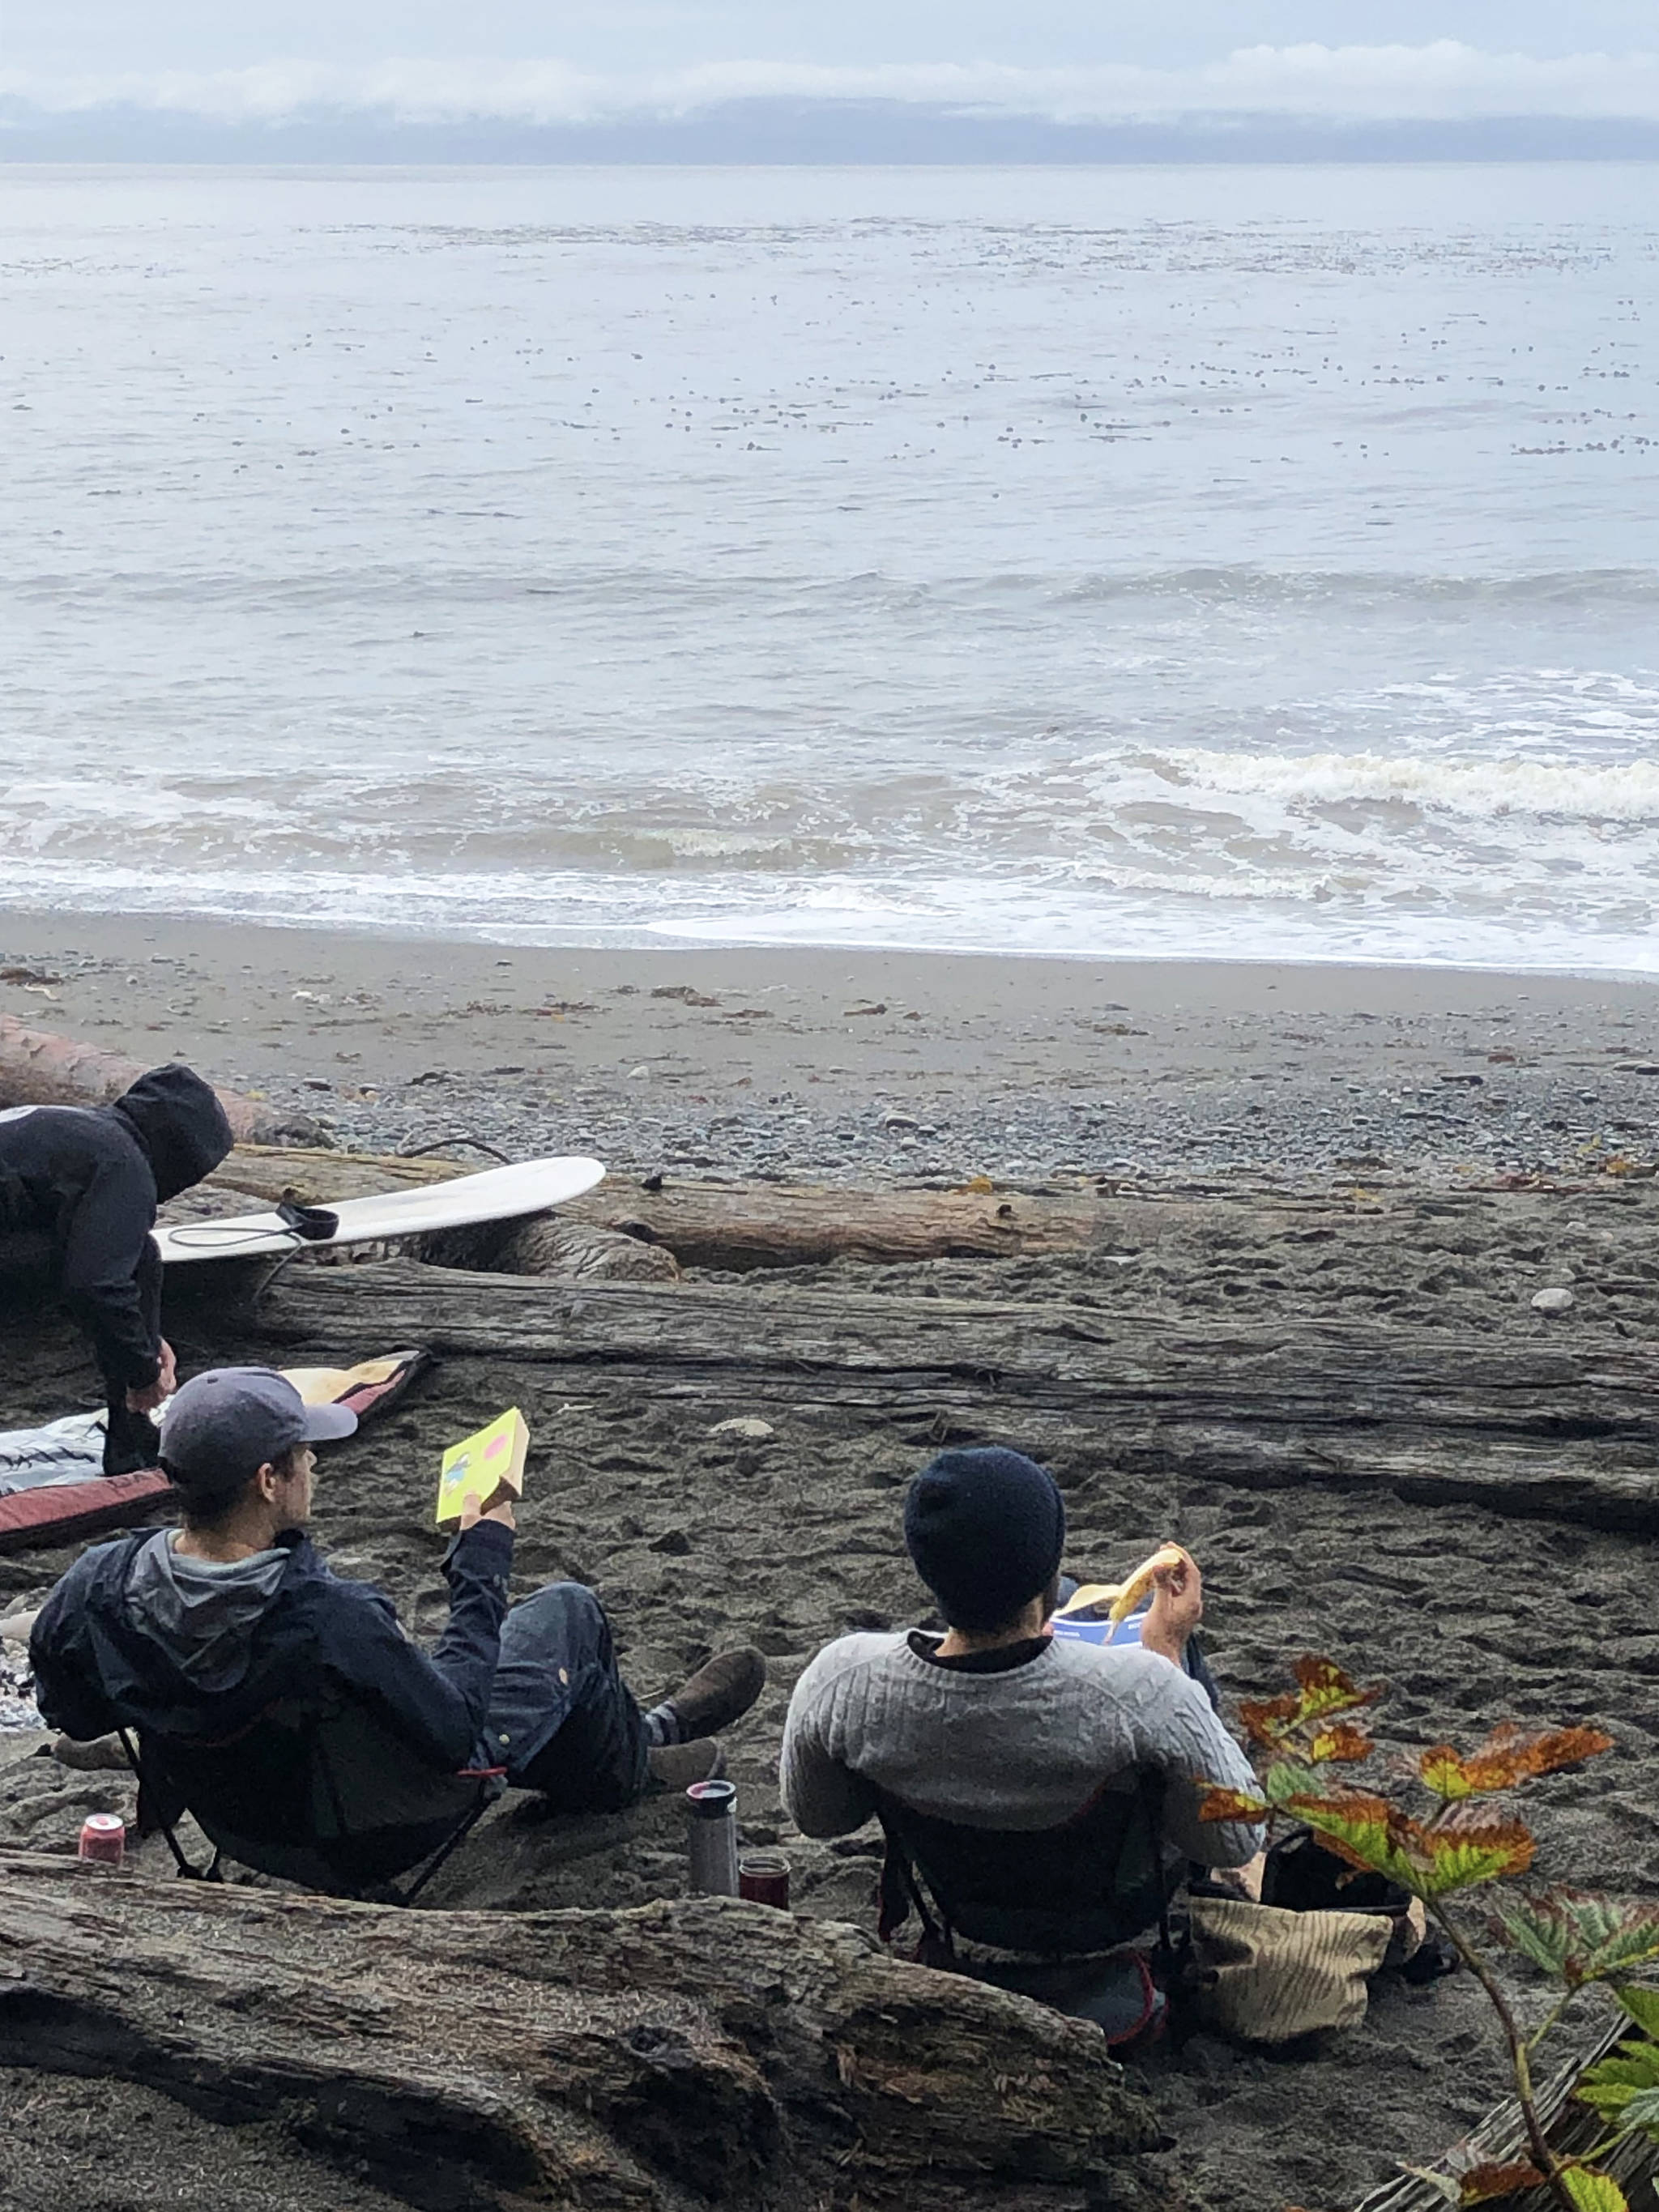 Resting before catching the next wave at Sombrio Beach. Amy Attas photo